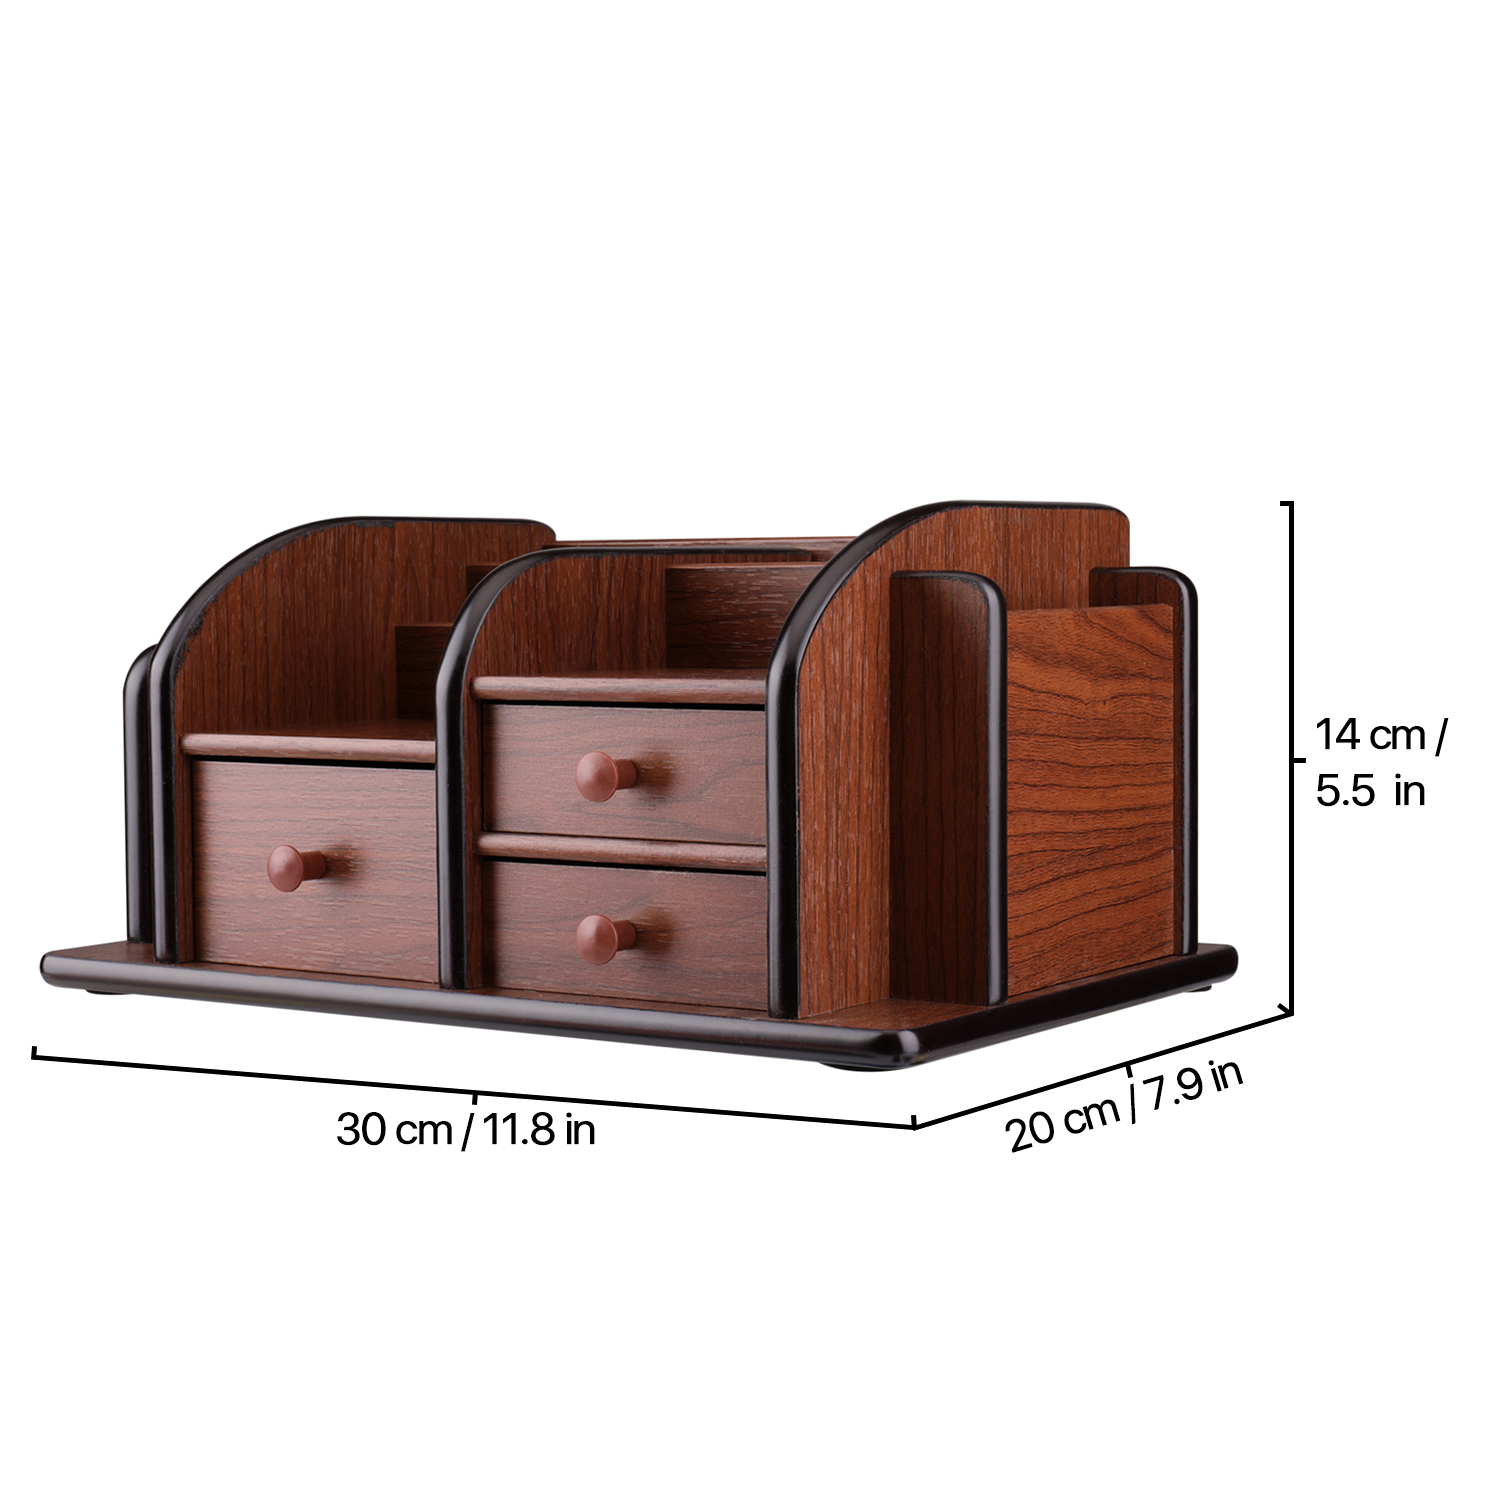 Tough & Durable - Made of sturdy & solid wood base material with a classic cherry brown finish for an elegant touch; Lightweight yet strong and dent-resistant provide maximum protection and usability